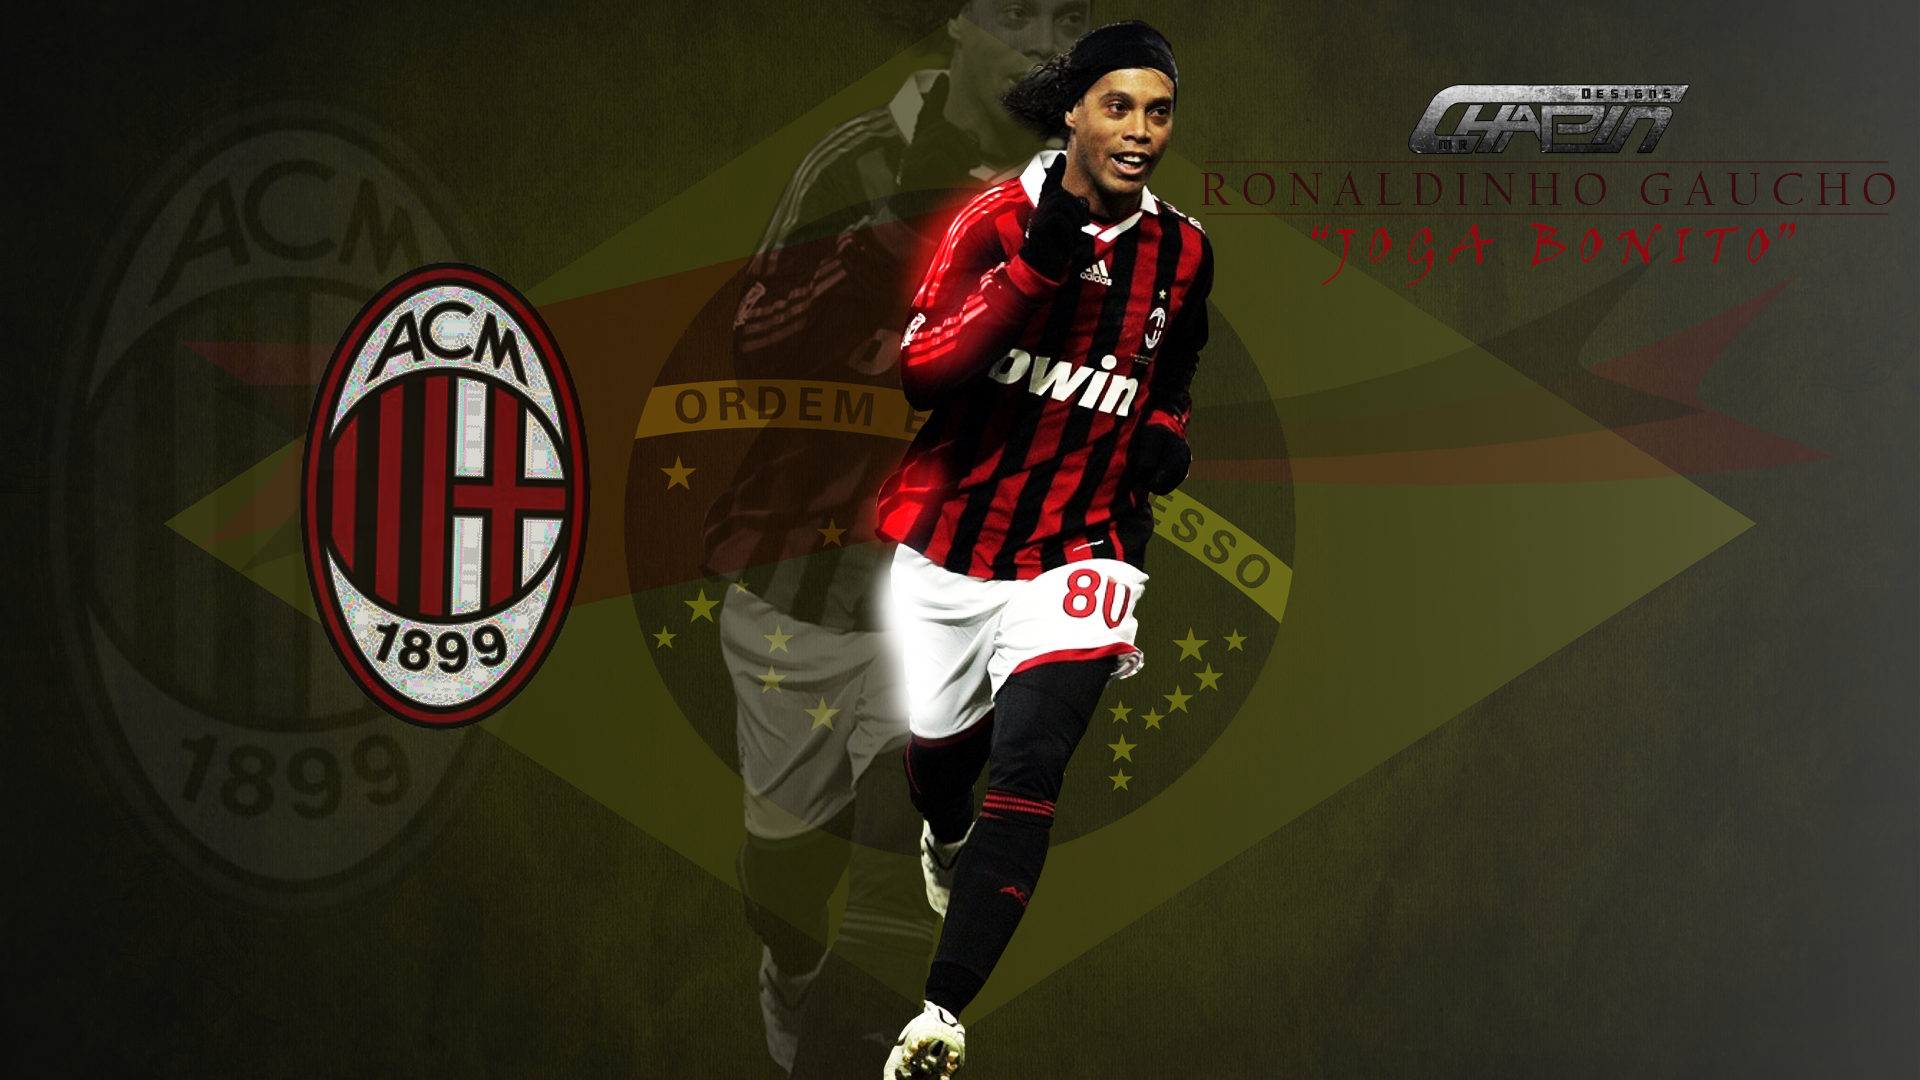 ronaldinho wallpaper download